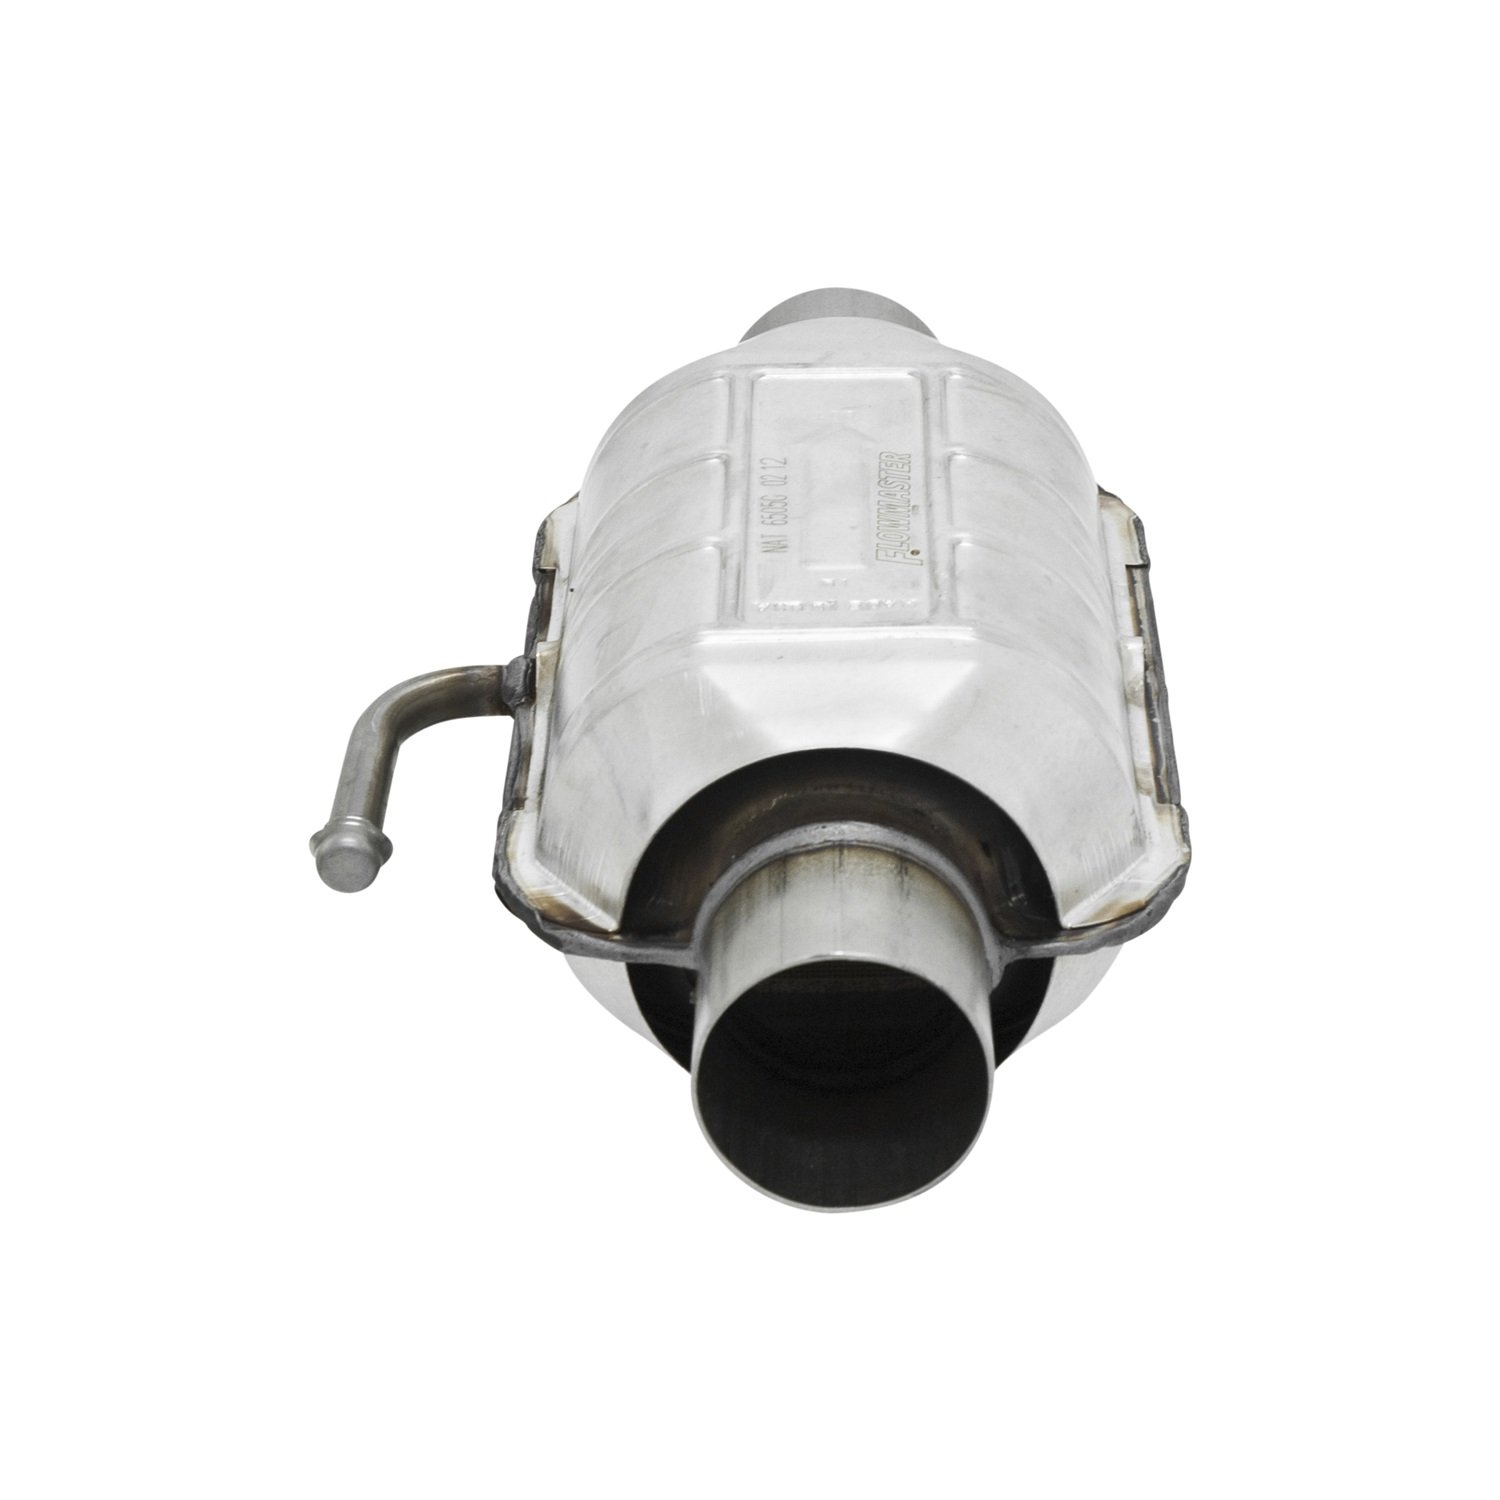 Flowmaster 2200125 220 Series 2.5 Inlet//Outlet Universal Catalytic Converter